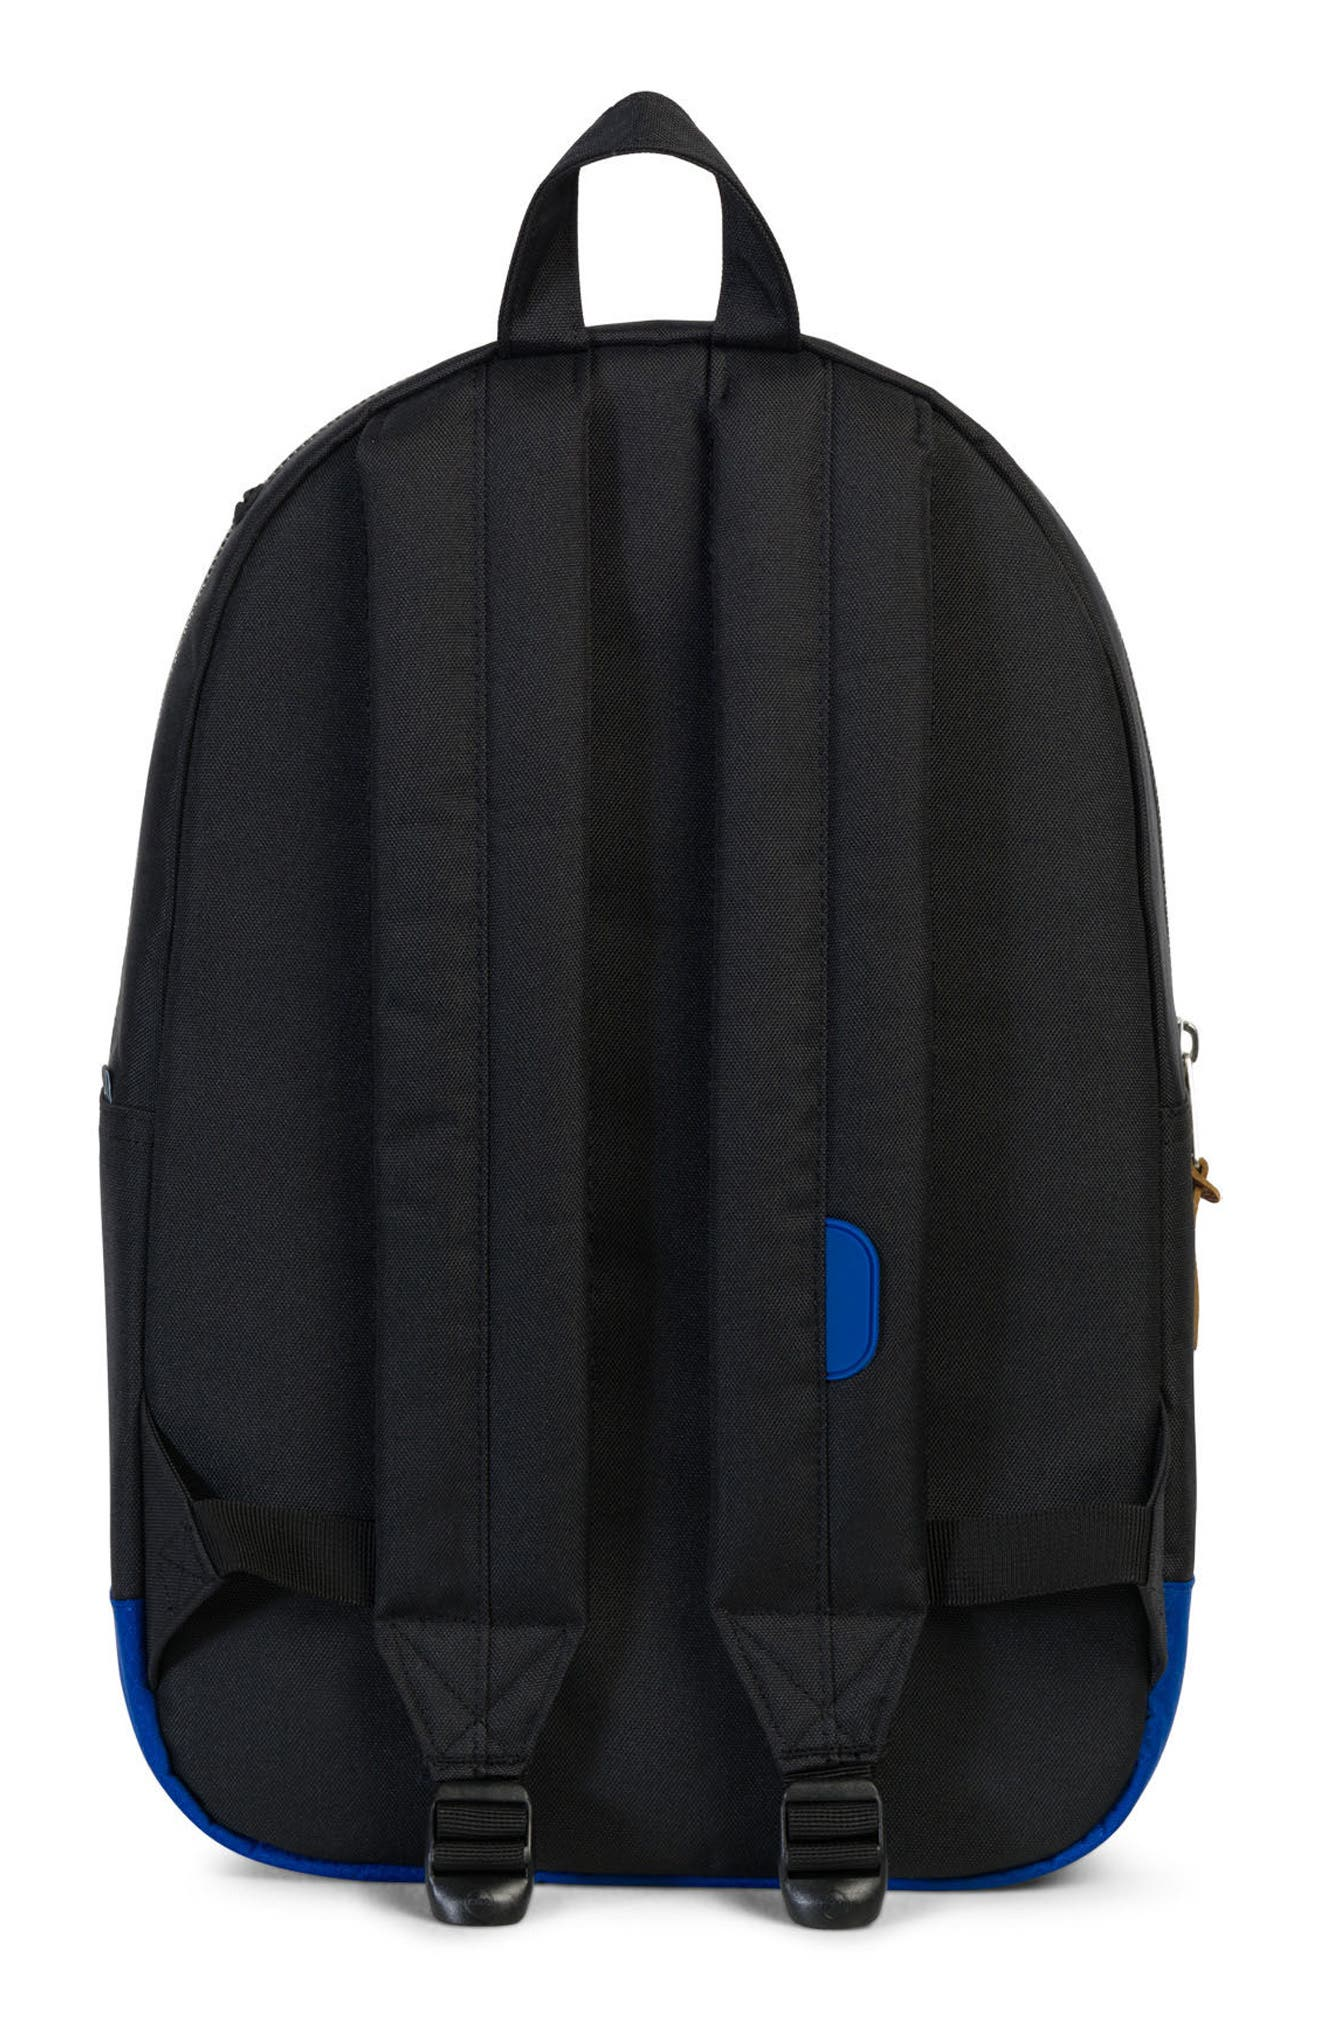 Settlement Backpack,                             Alternate thumbnail 2, color,                             Black/ Surf The Web